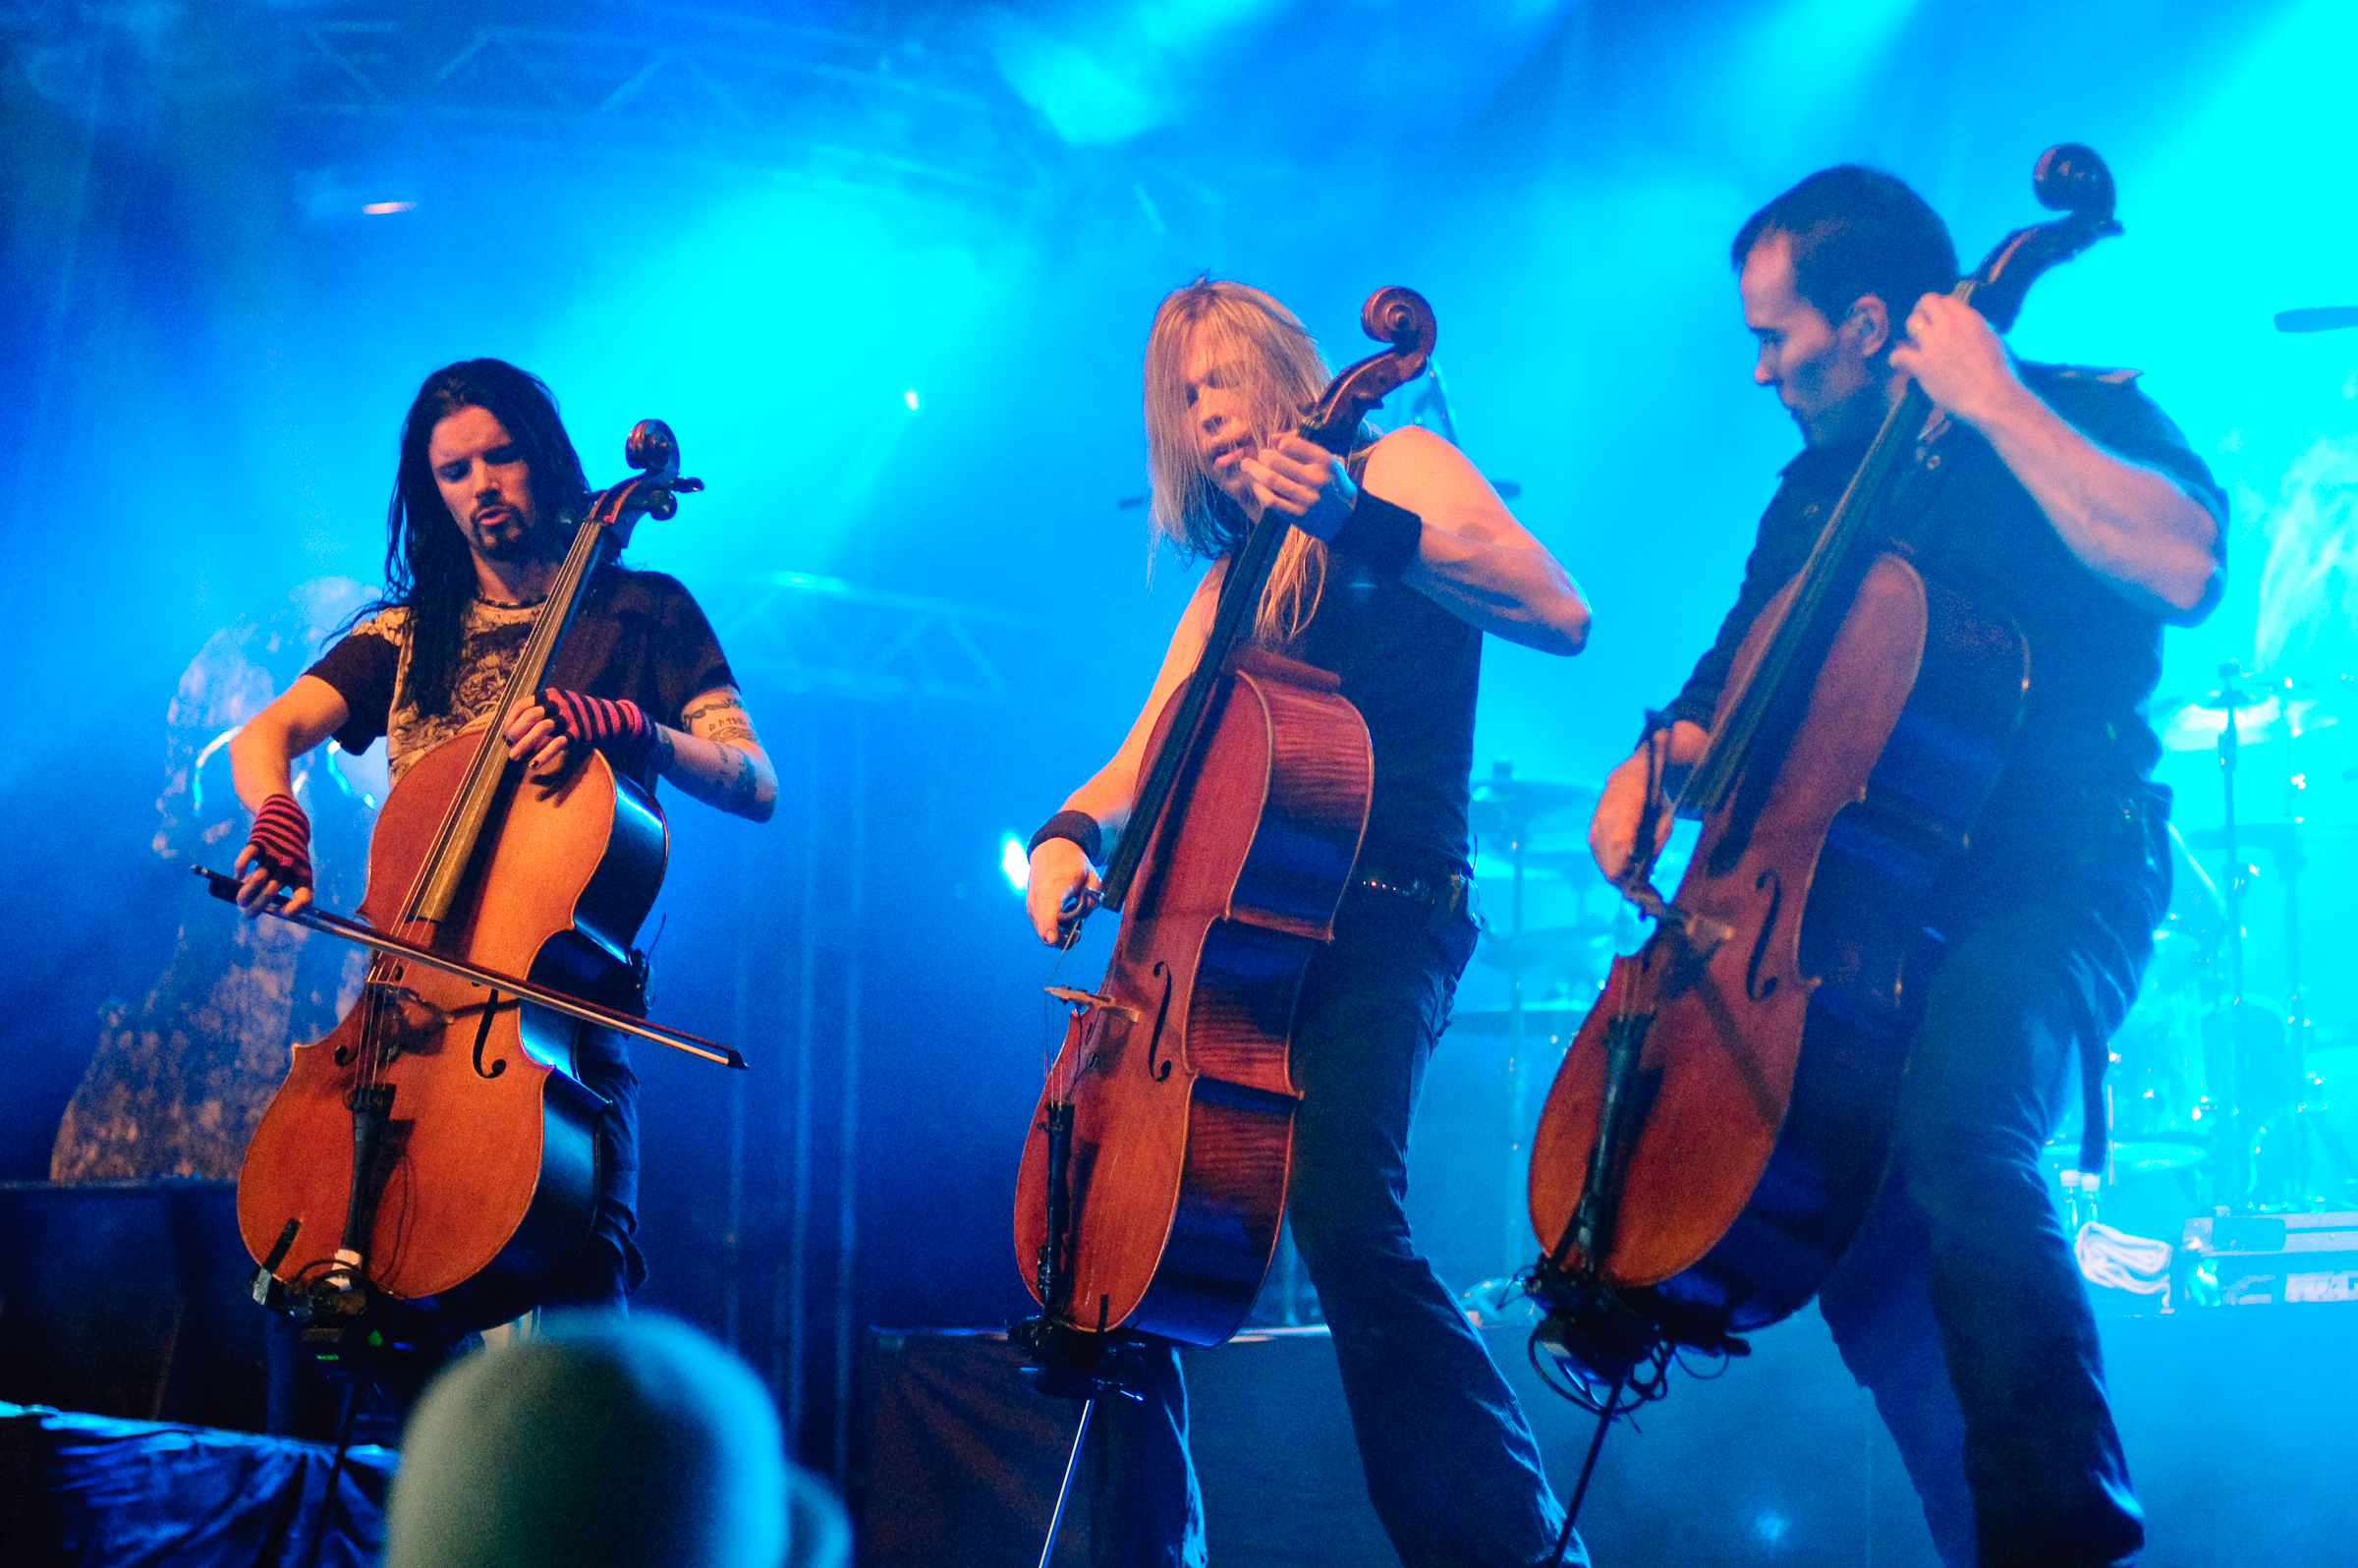 APOCALYPTICA - one of many supremely talented metal bands on strings